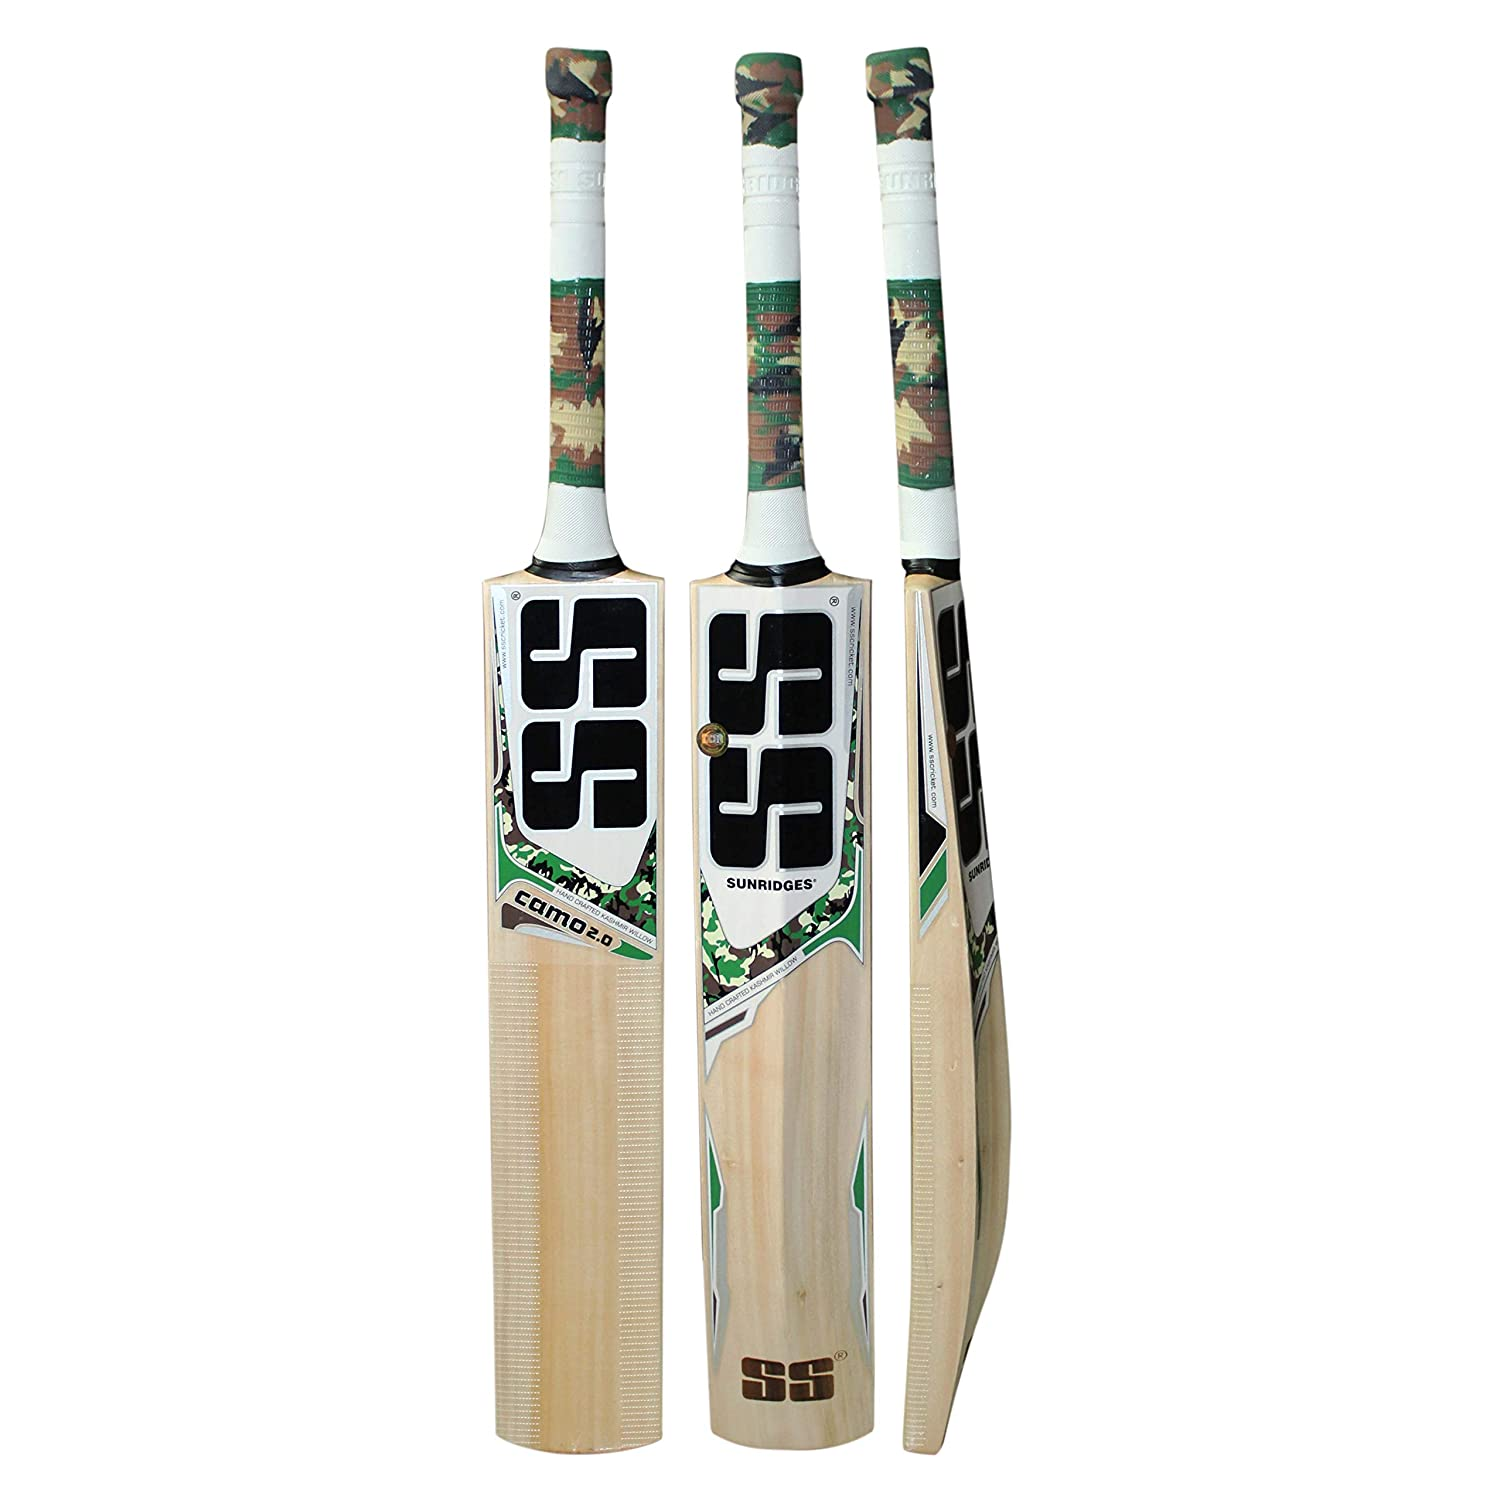 9ddd9f2ae48 SS Ton Camo 2.0 Kashmir willow full size cricket bat for leather ball use